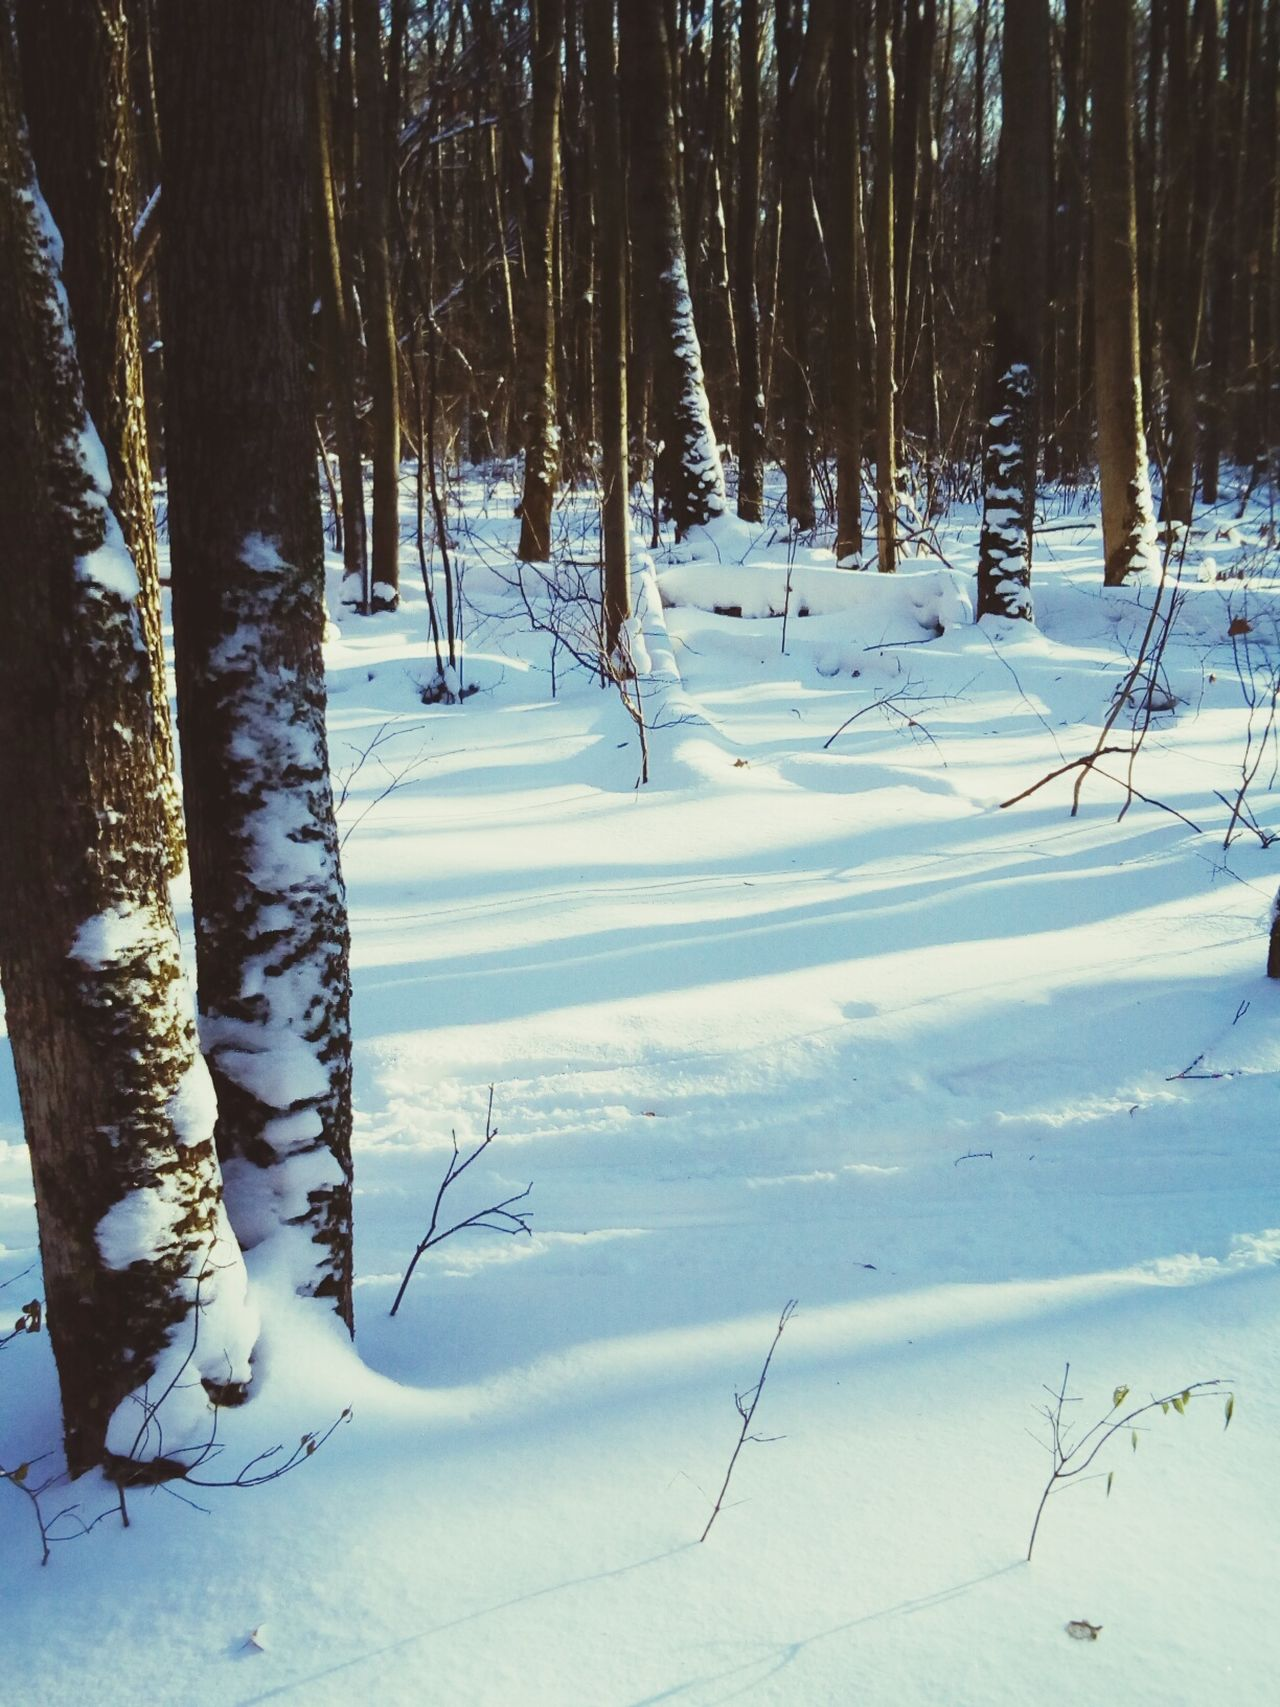 Snow Winter Cold Temperature Tree Beauty In Nature Nature Tranquility Tree Trunk Scenics Landscape Forest No People Outdoors Day Sky Plant The Great Outdoors - 2016 EyeEm Awards Nature_collection EyeEm Nature Lover Shadow Frozen Bare Tree Sunlight Close-up Beauty In Nature